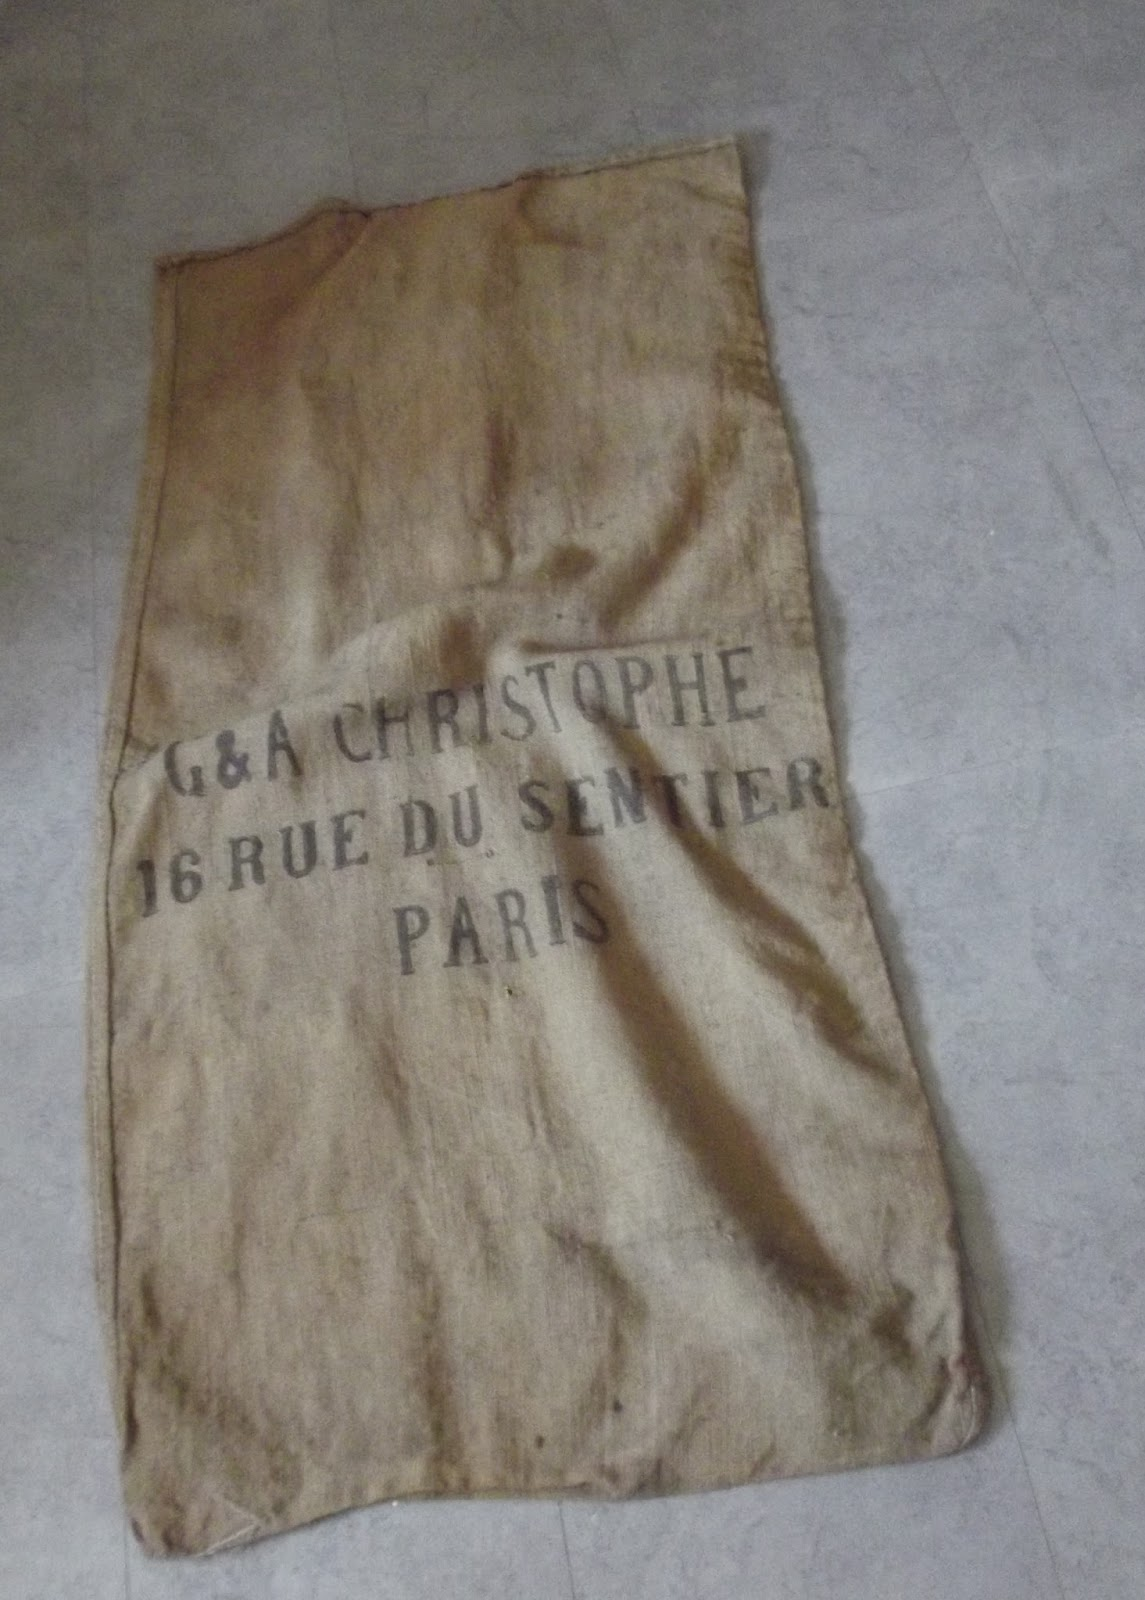 ancien sac a patates en toile de jute le sentier a paris art populaire. Black Bedroom Furniture Sets. Home Design Ideas